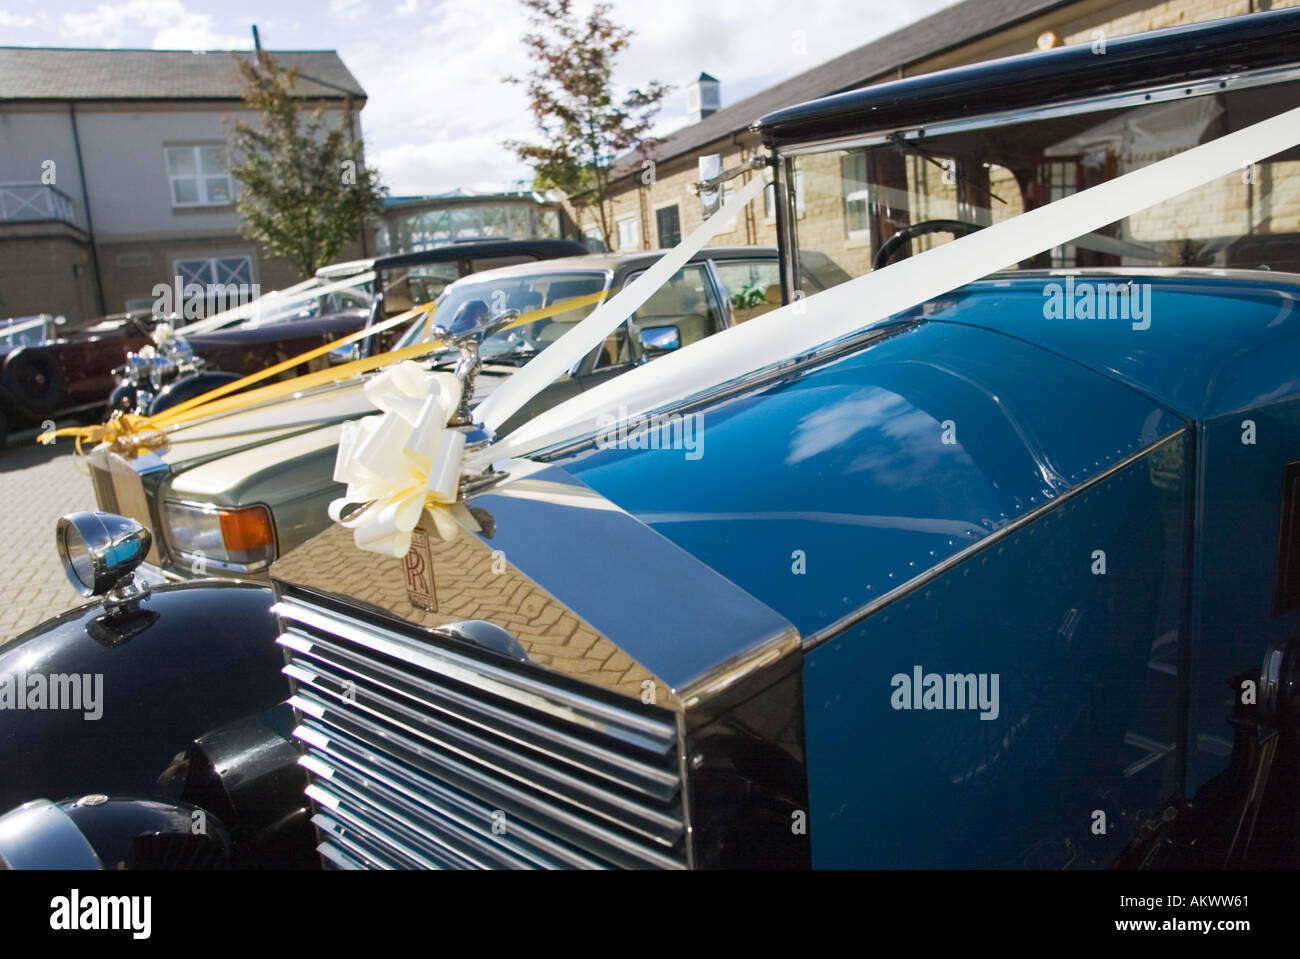 Rolls Royce wedding cars with ribbons - Stock Image